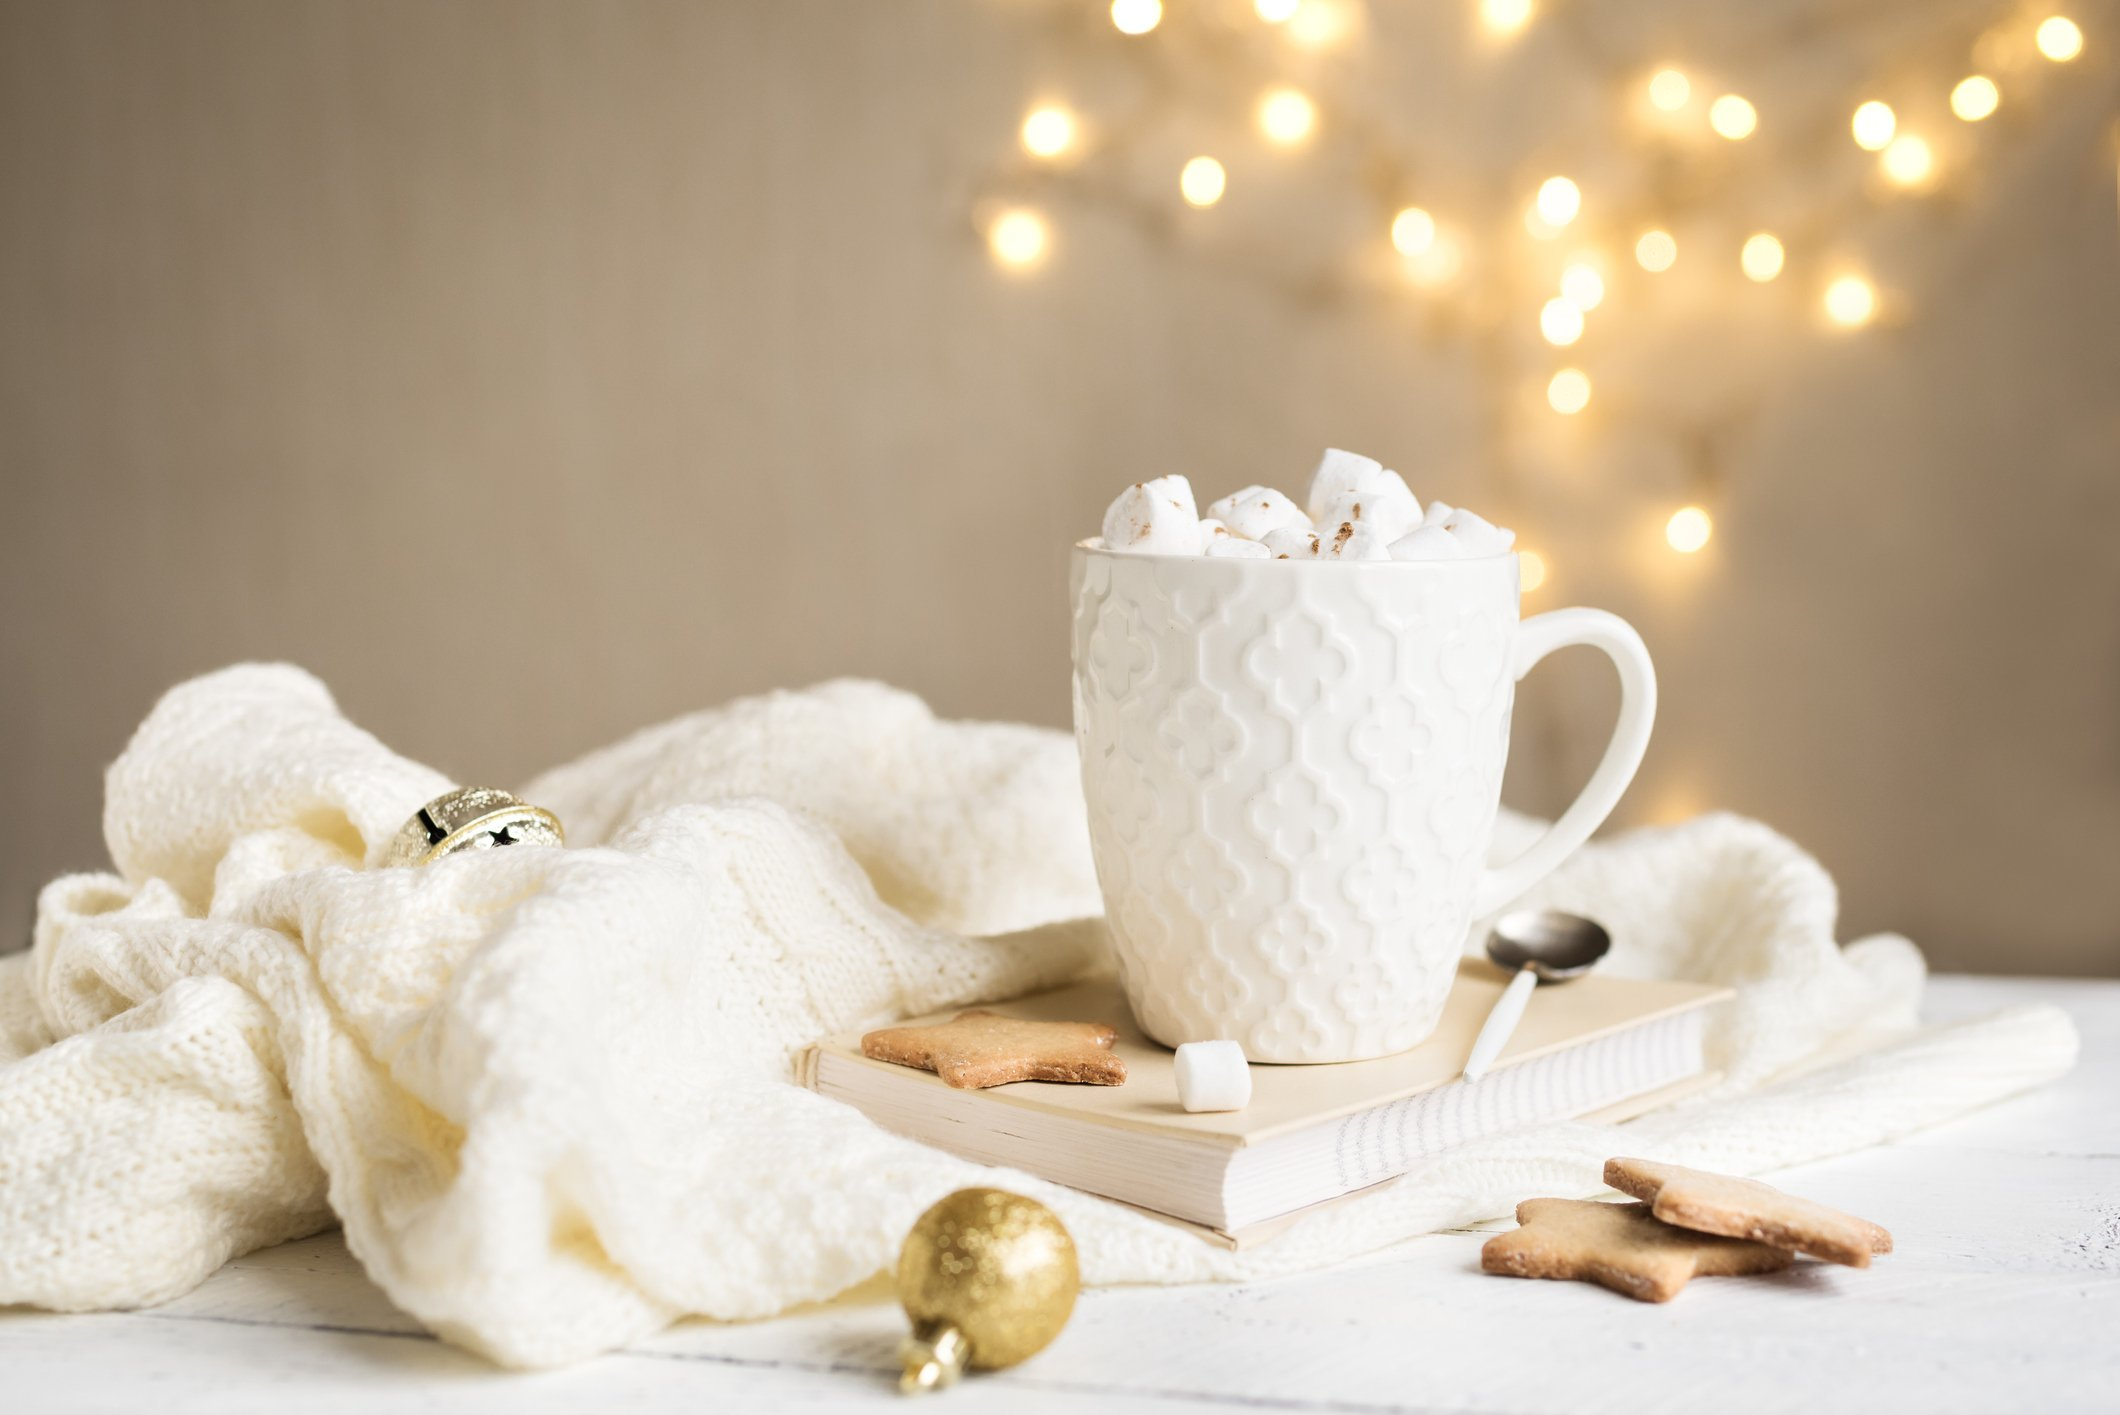 Christmas Hot chocolate with marshmallows in white mug, copy space. Hot cocoa drink for Christmas and winter holidays with warm scarf, lights, festive decor.